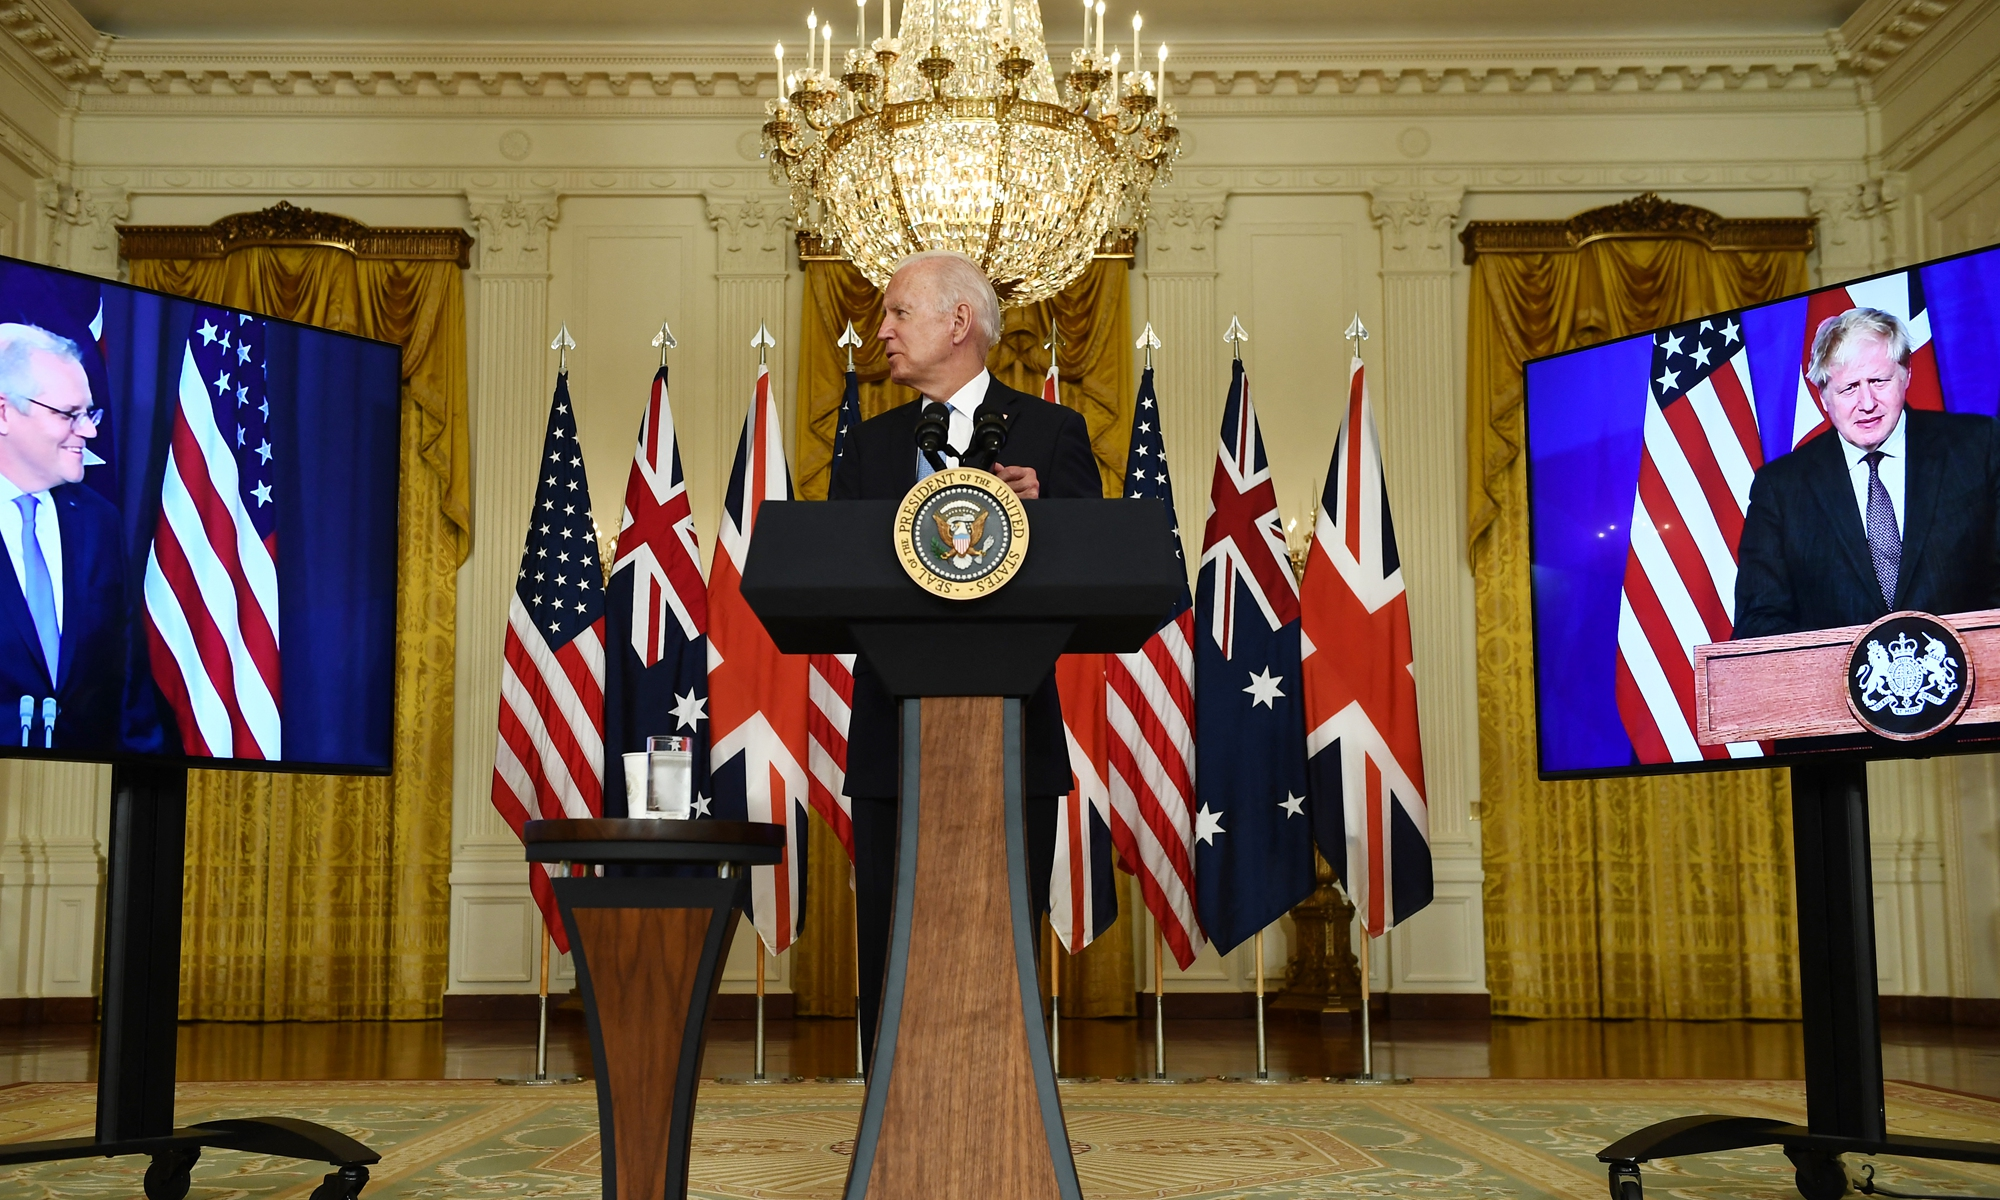 US President Joe Biden participates in a virtual press conference on national security  in the White House in Washington, DC, on Wednesday US time, with British Prime Minister Boris Johnson (right) and Australian Prime Minister Scott Morrison in attendance via video link. Biden announced that the US is forming a new Indo-Pacific security alliance with the UK and Australia. Photo: AFP